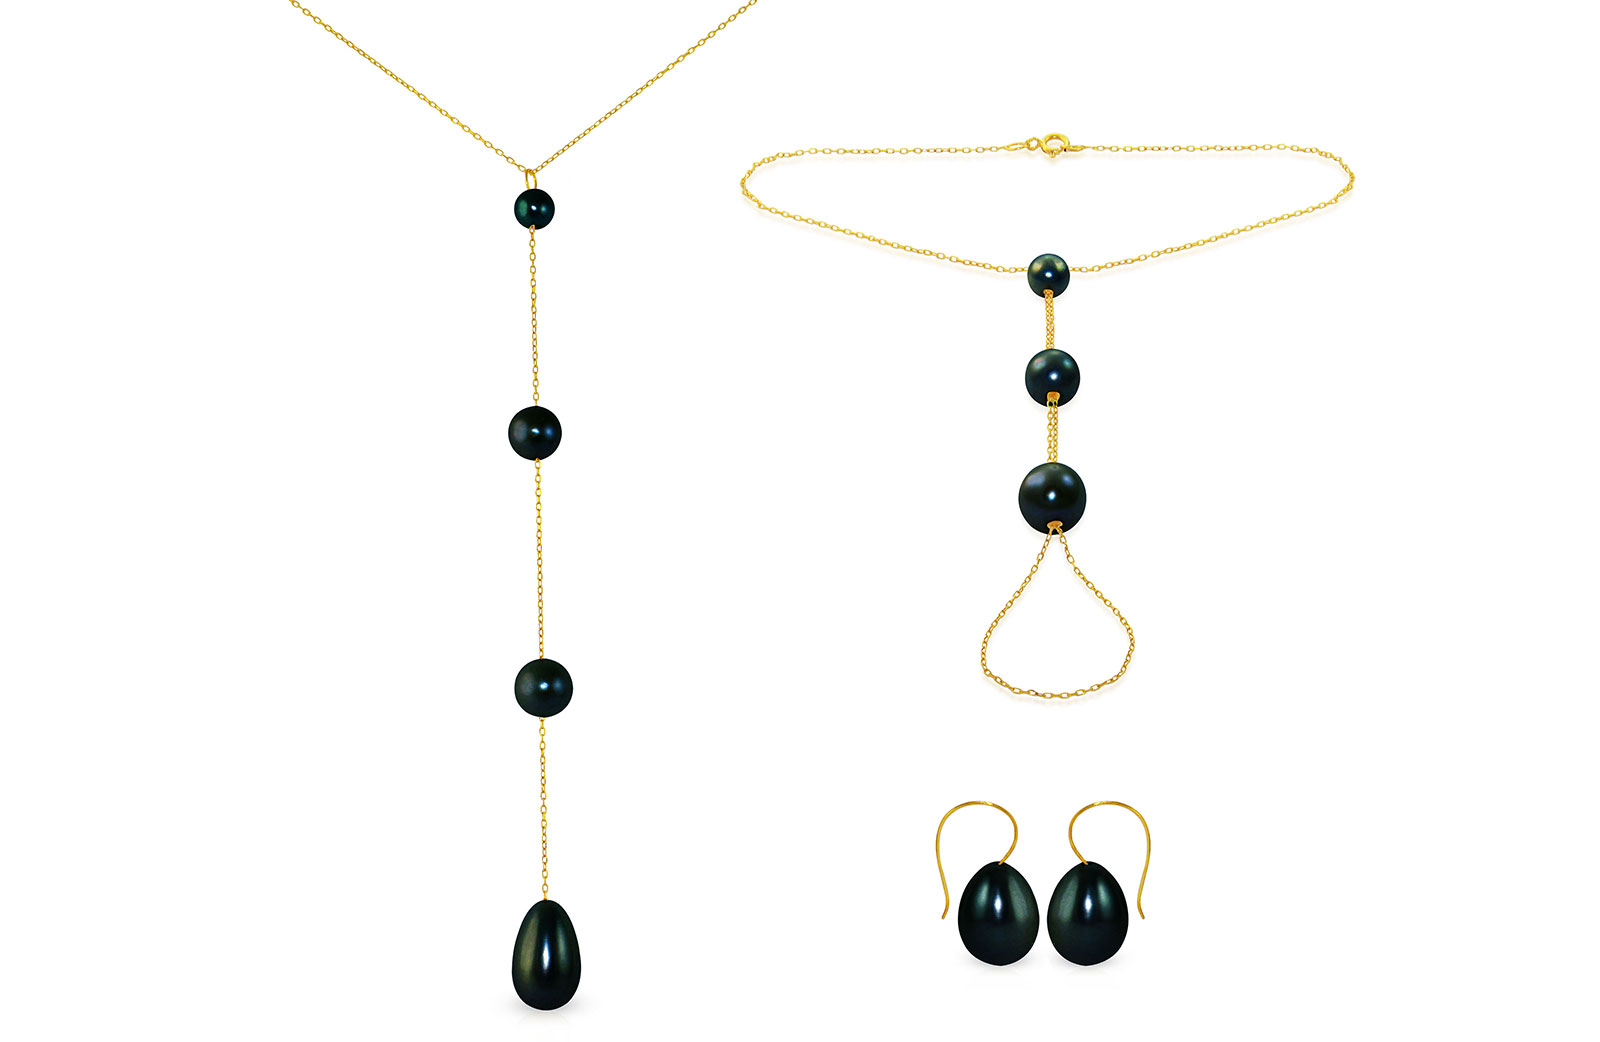 Vera Perla 10K Gold Gradual Built-in with Black Drop Pearl Jewelry Set, 3 Pcs